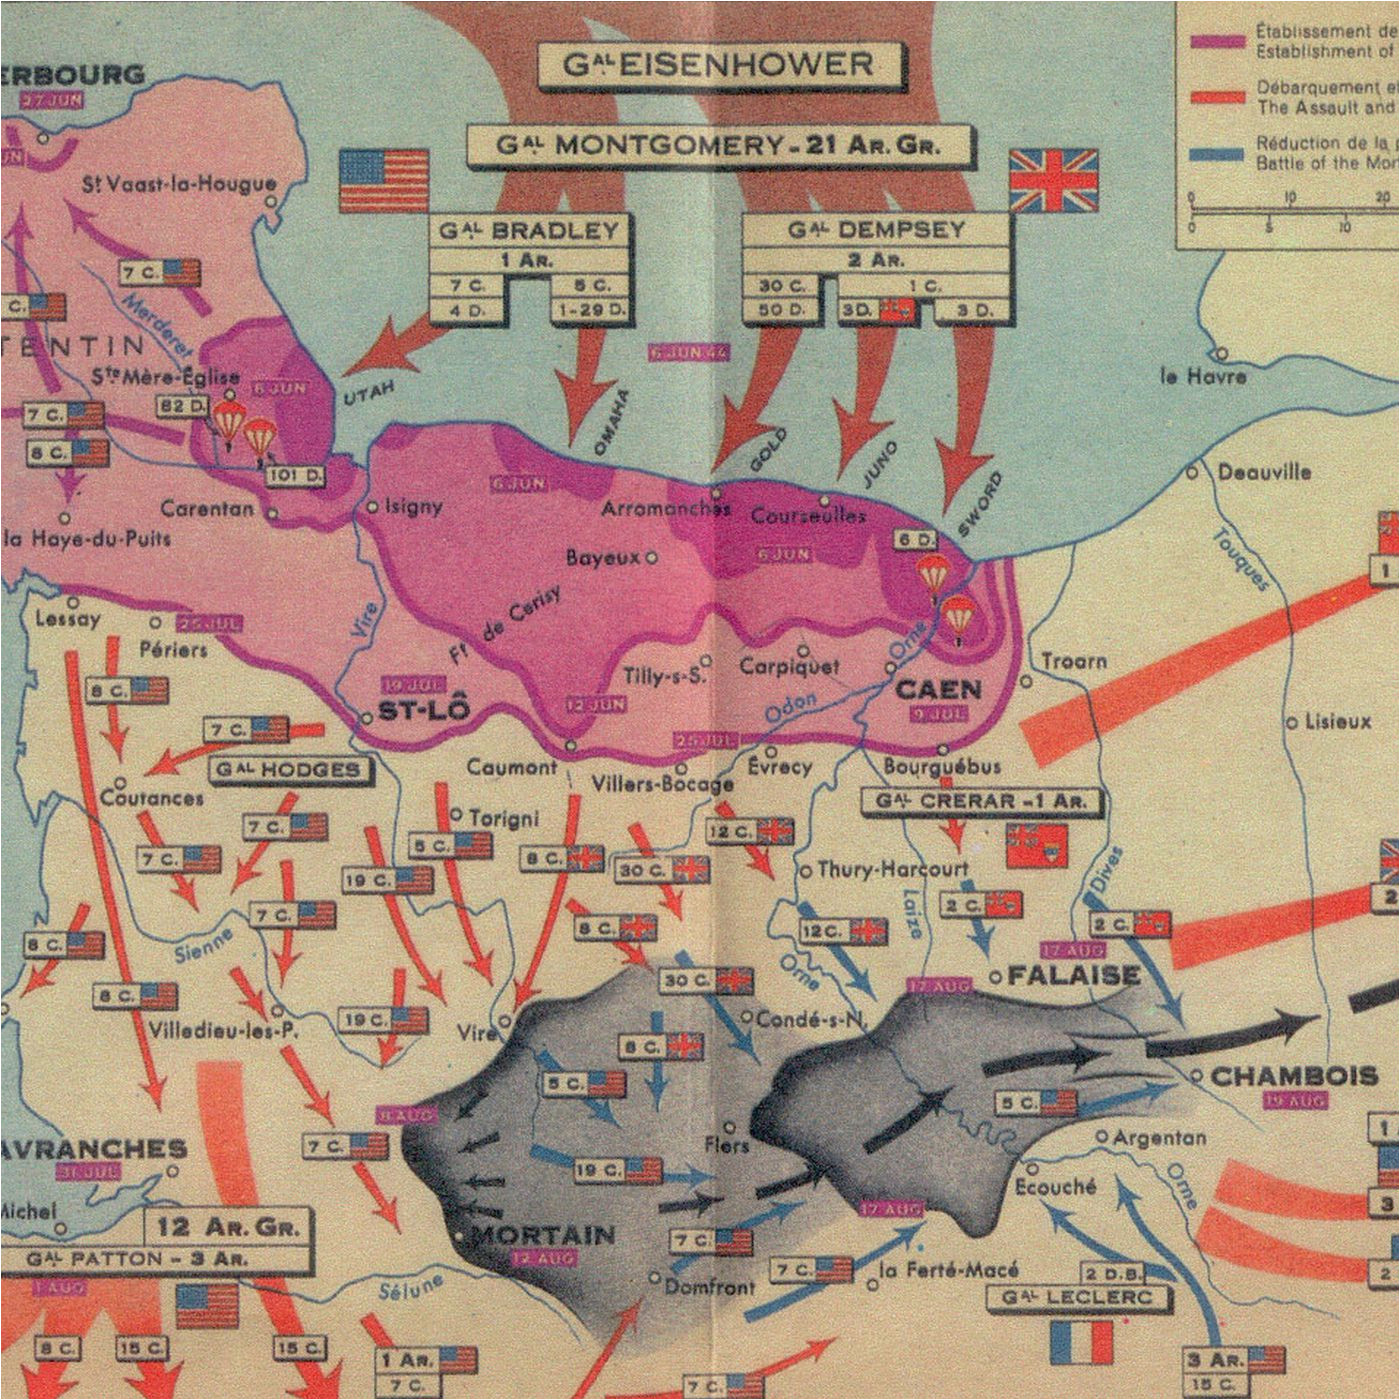 Sebring Ohio Map the Story Of D Day In Five Maps Vox